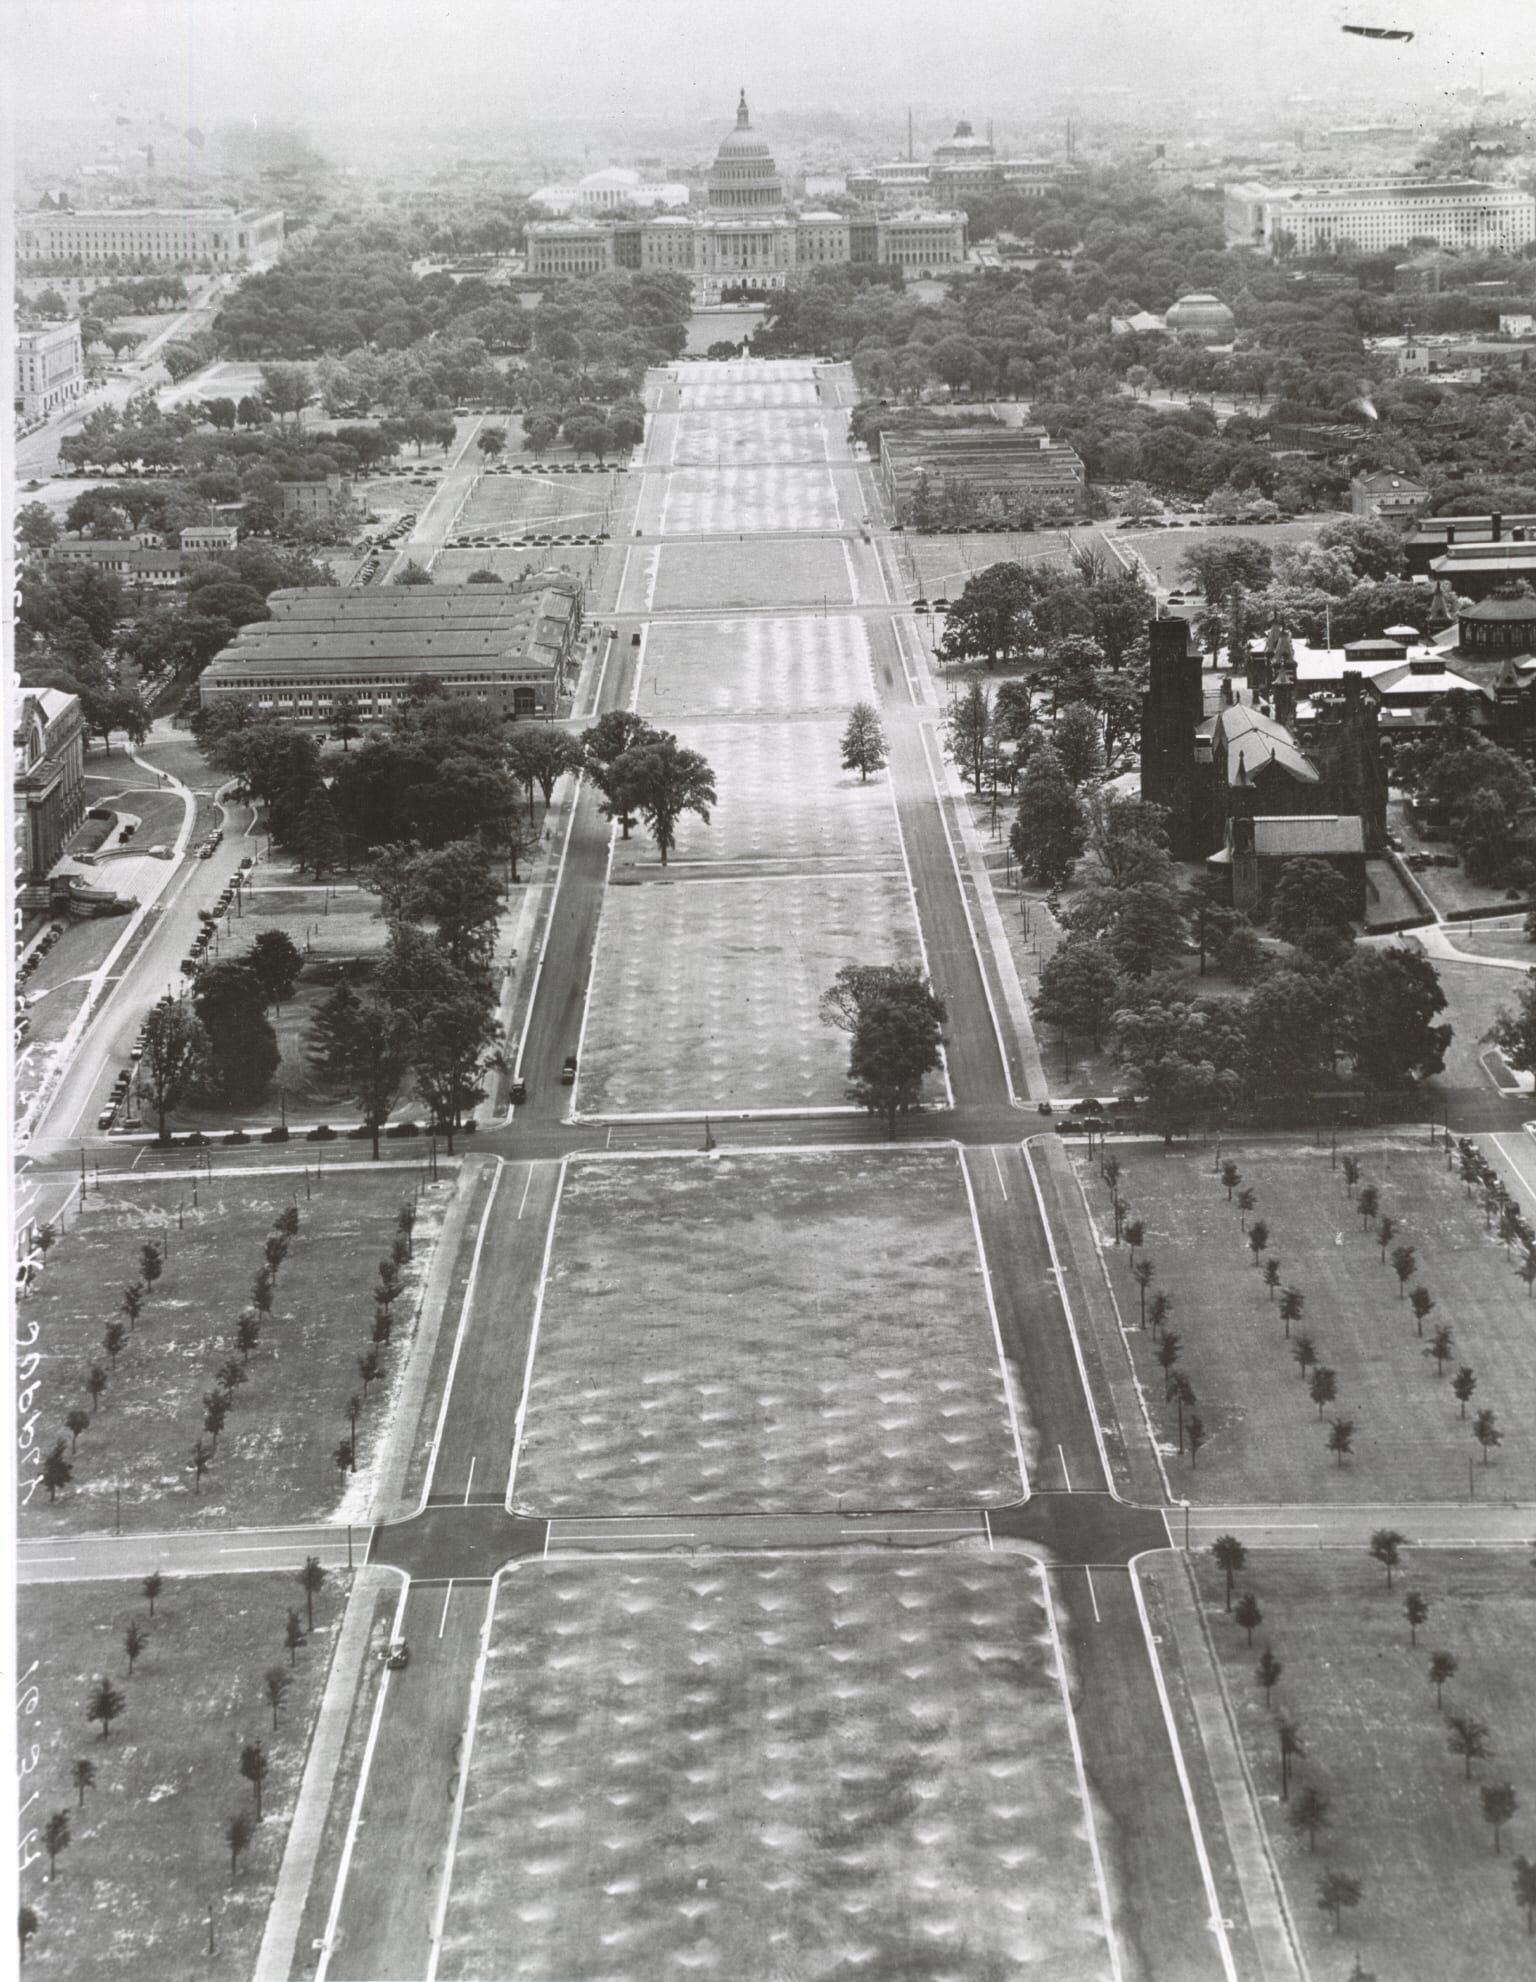 National Mall Viewed from the Washington Monument